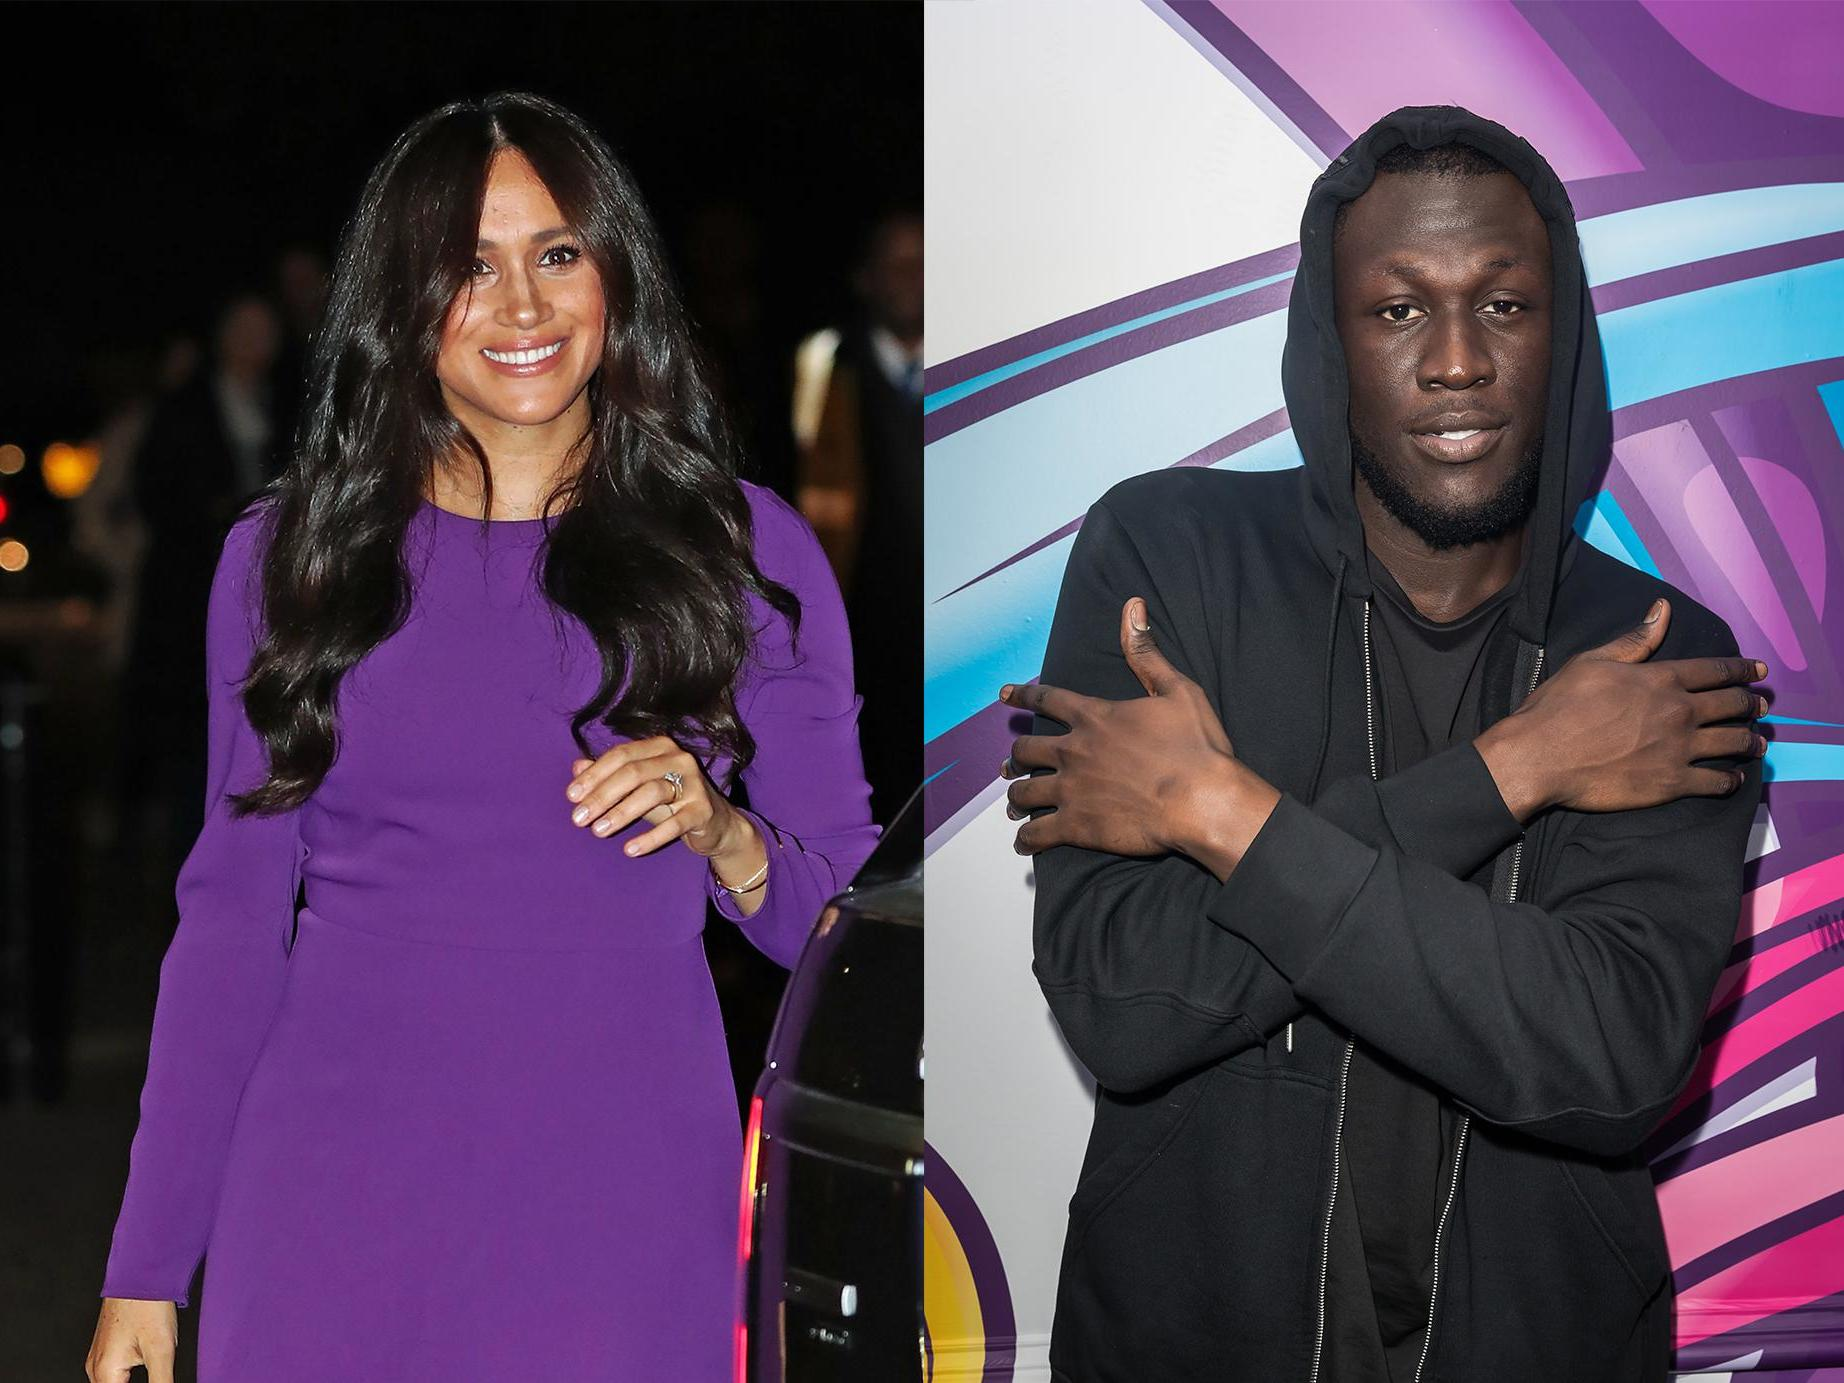 Powerlist 2020: Meghan Markle and Stormzy named among Britain's most influential black people